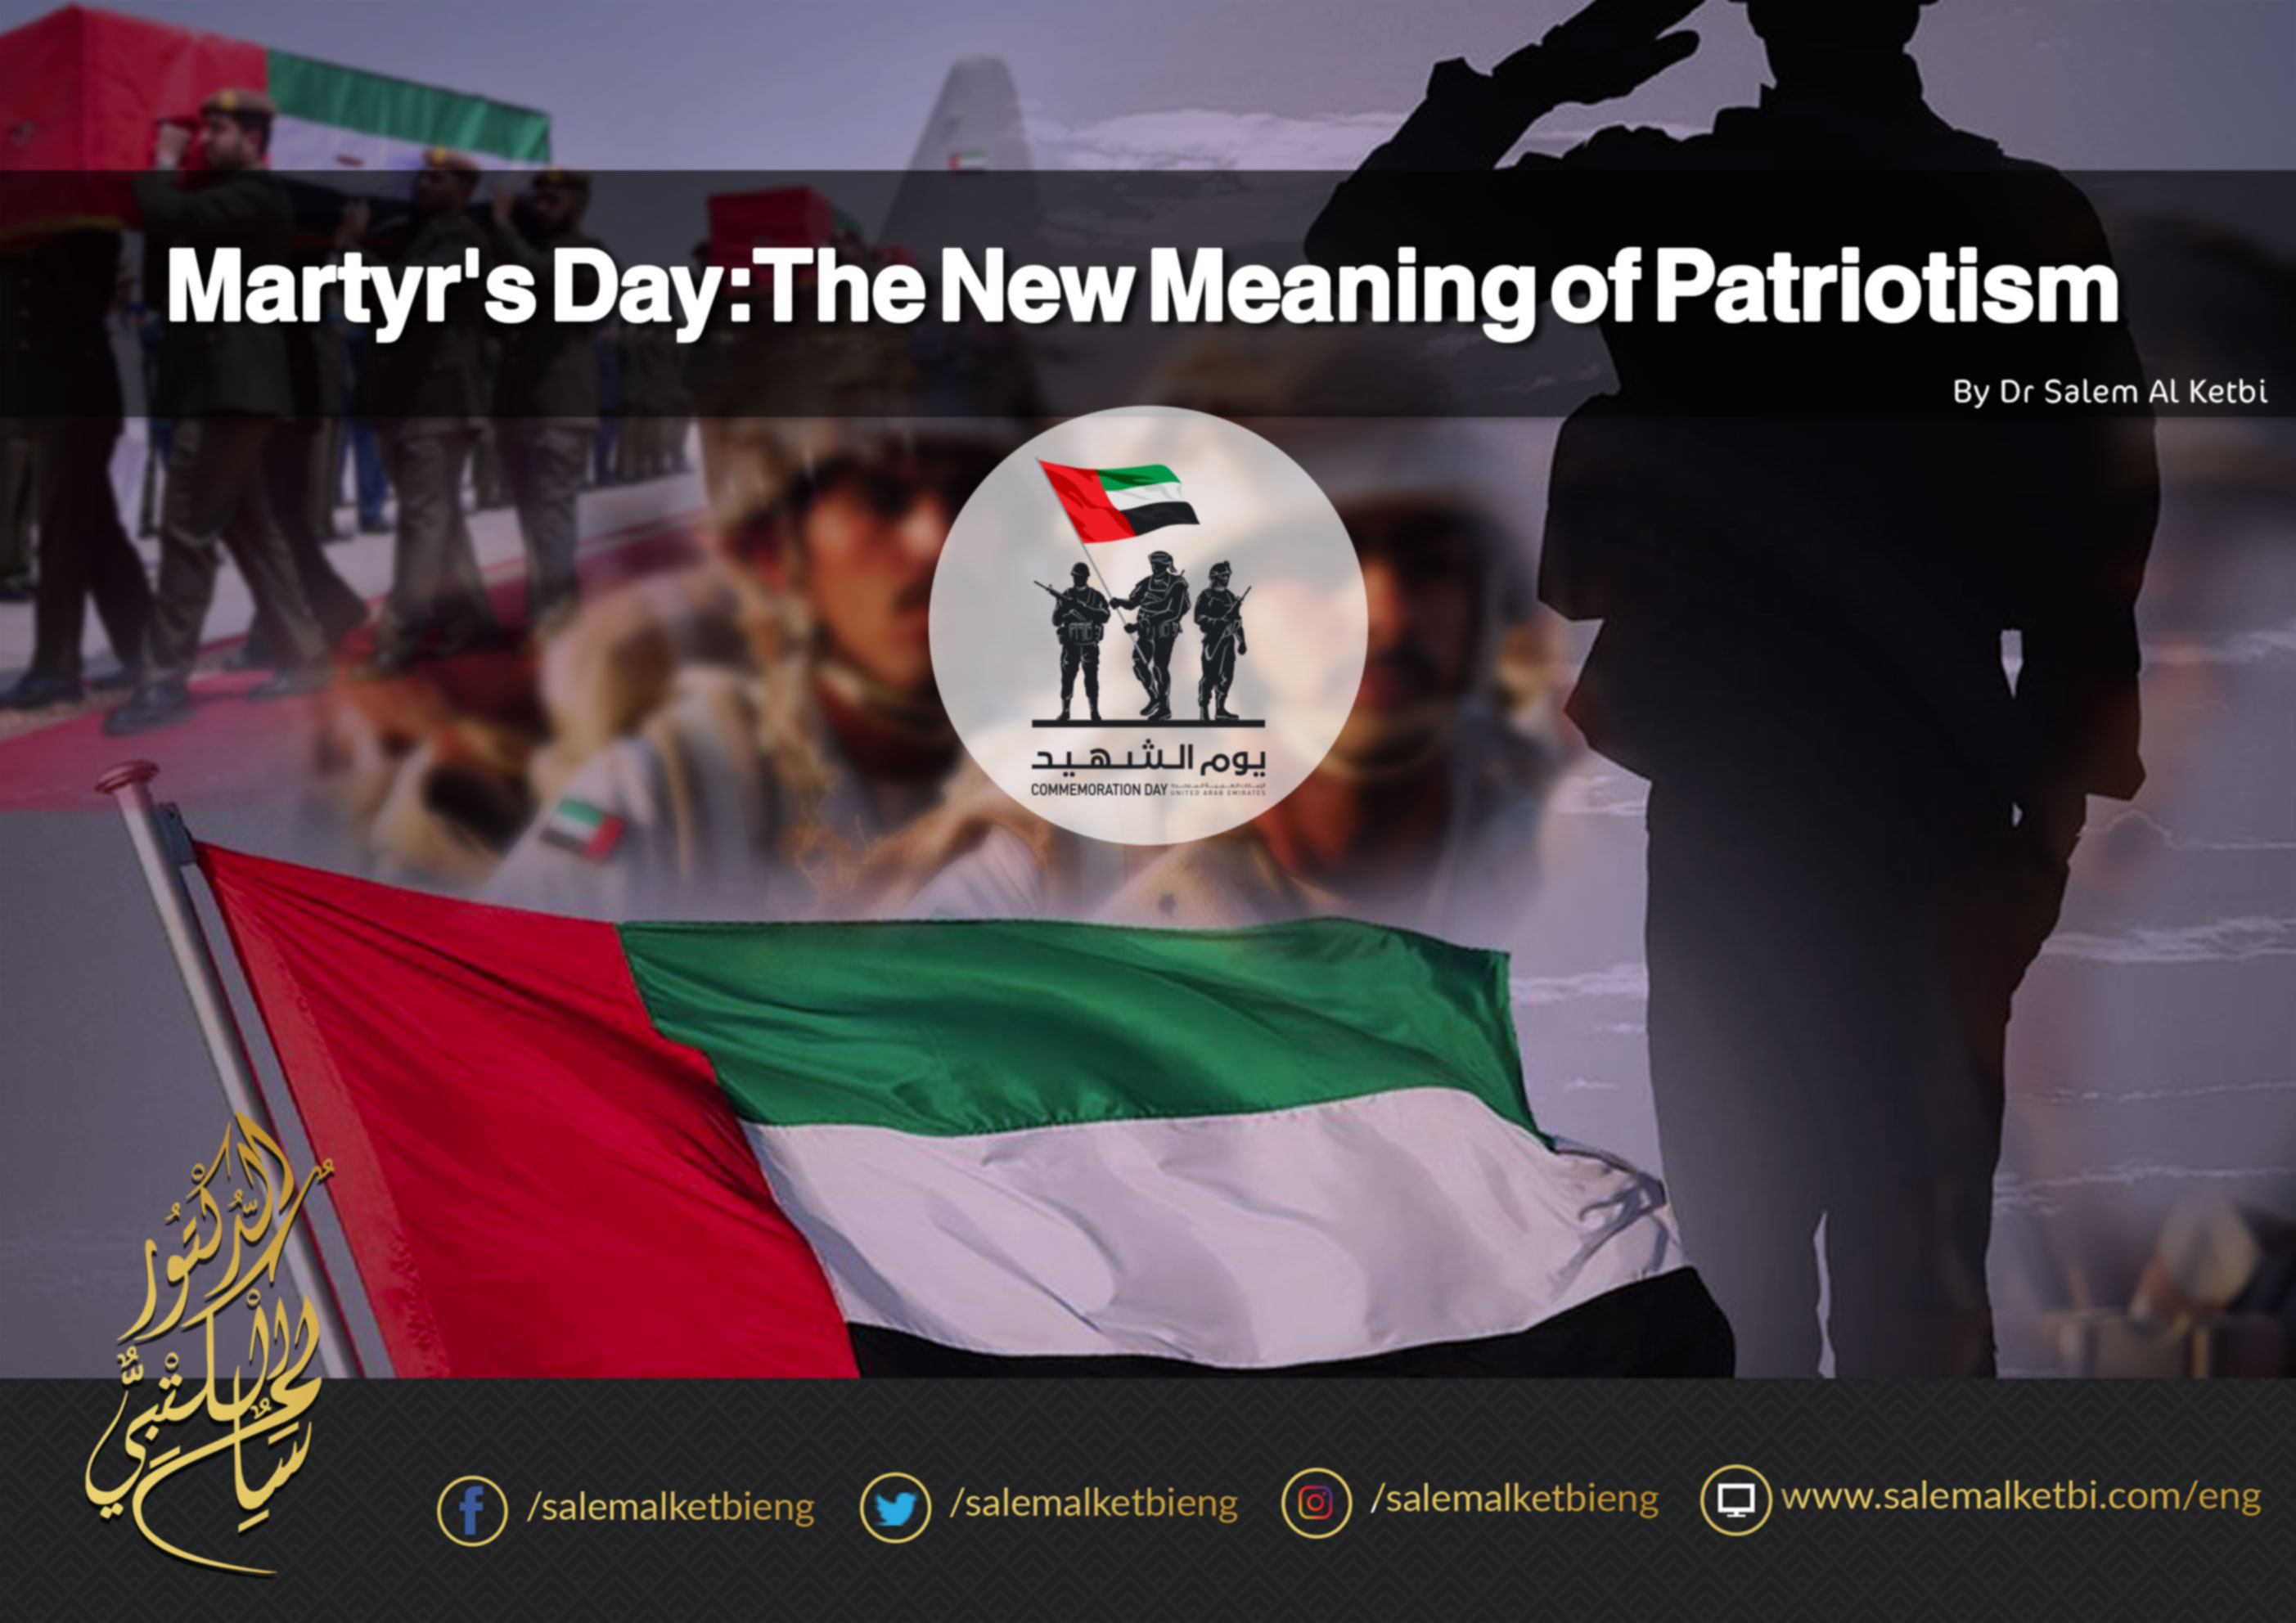 Martyr's Day: The New Meaning of Patriotism